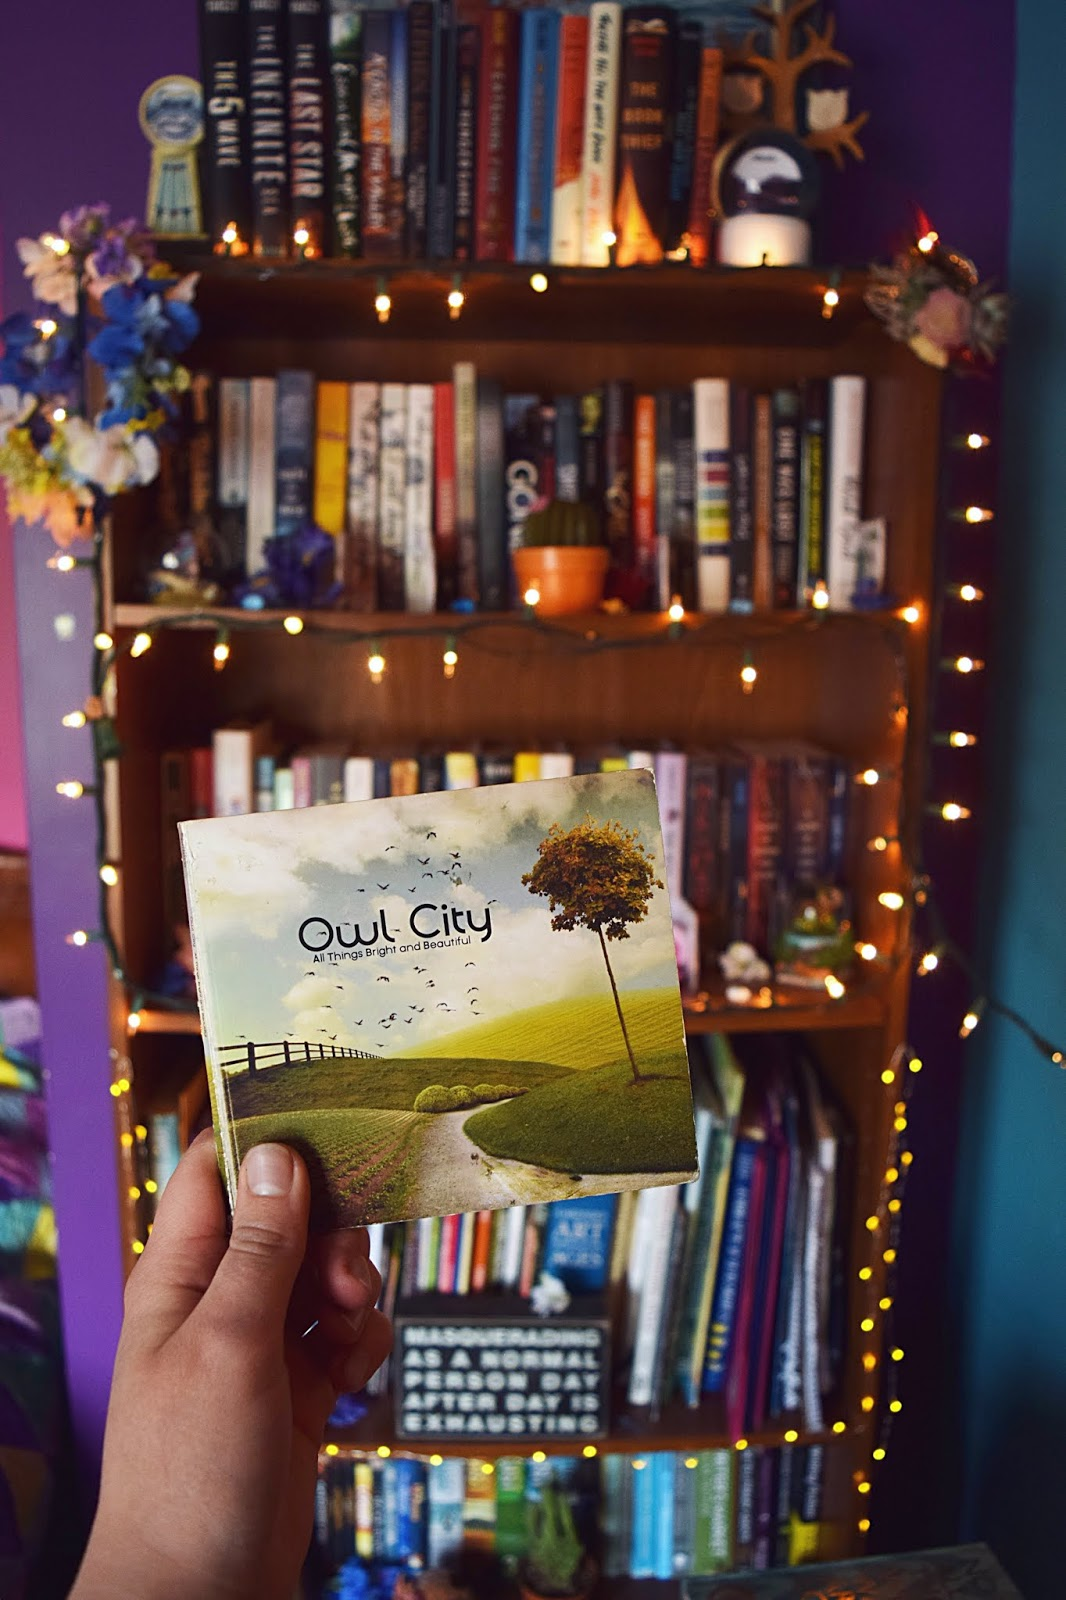 Olivia J, The WordShaker: Owl City's